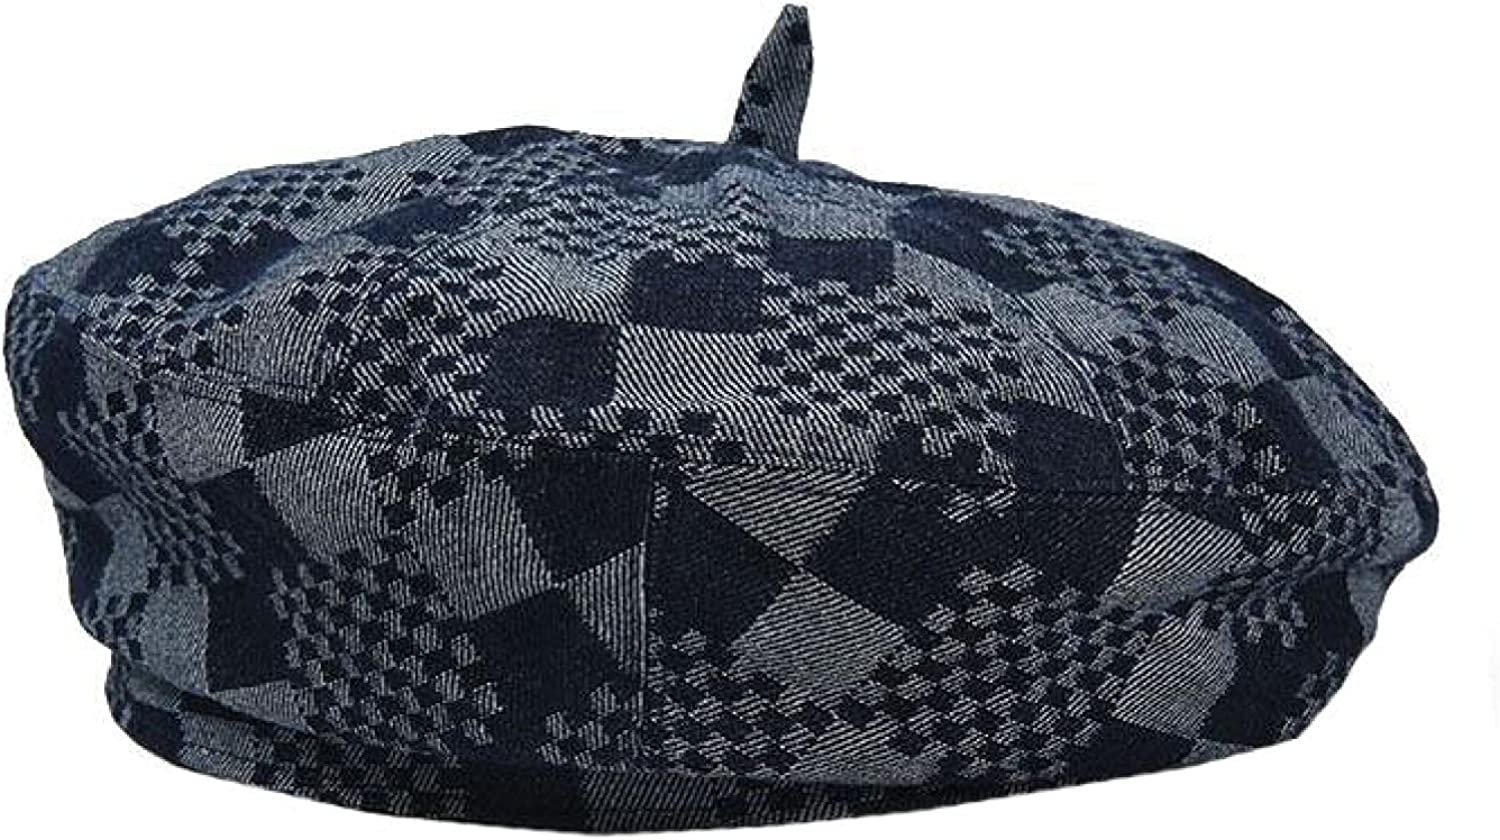 Cotton Berets for Women Retro Style Painte British Fashion Denim San Francisco Mall All stores are sold